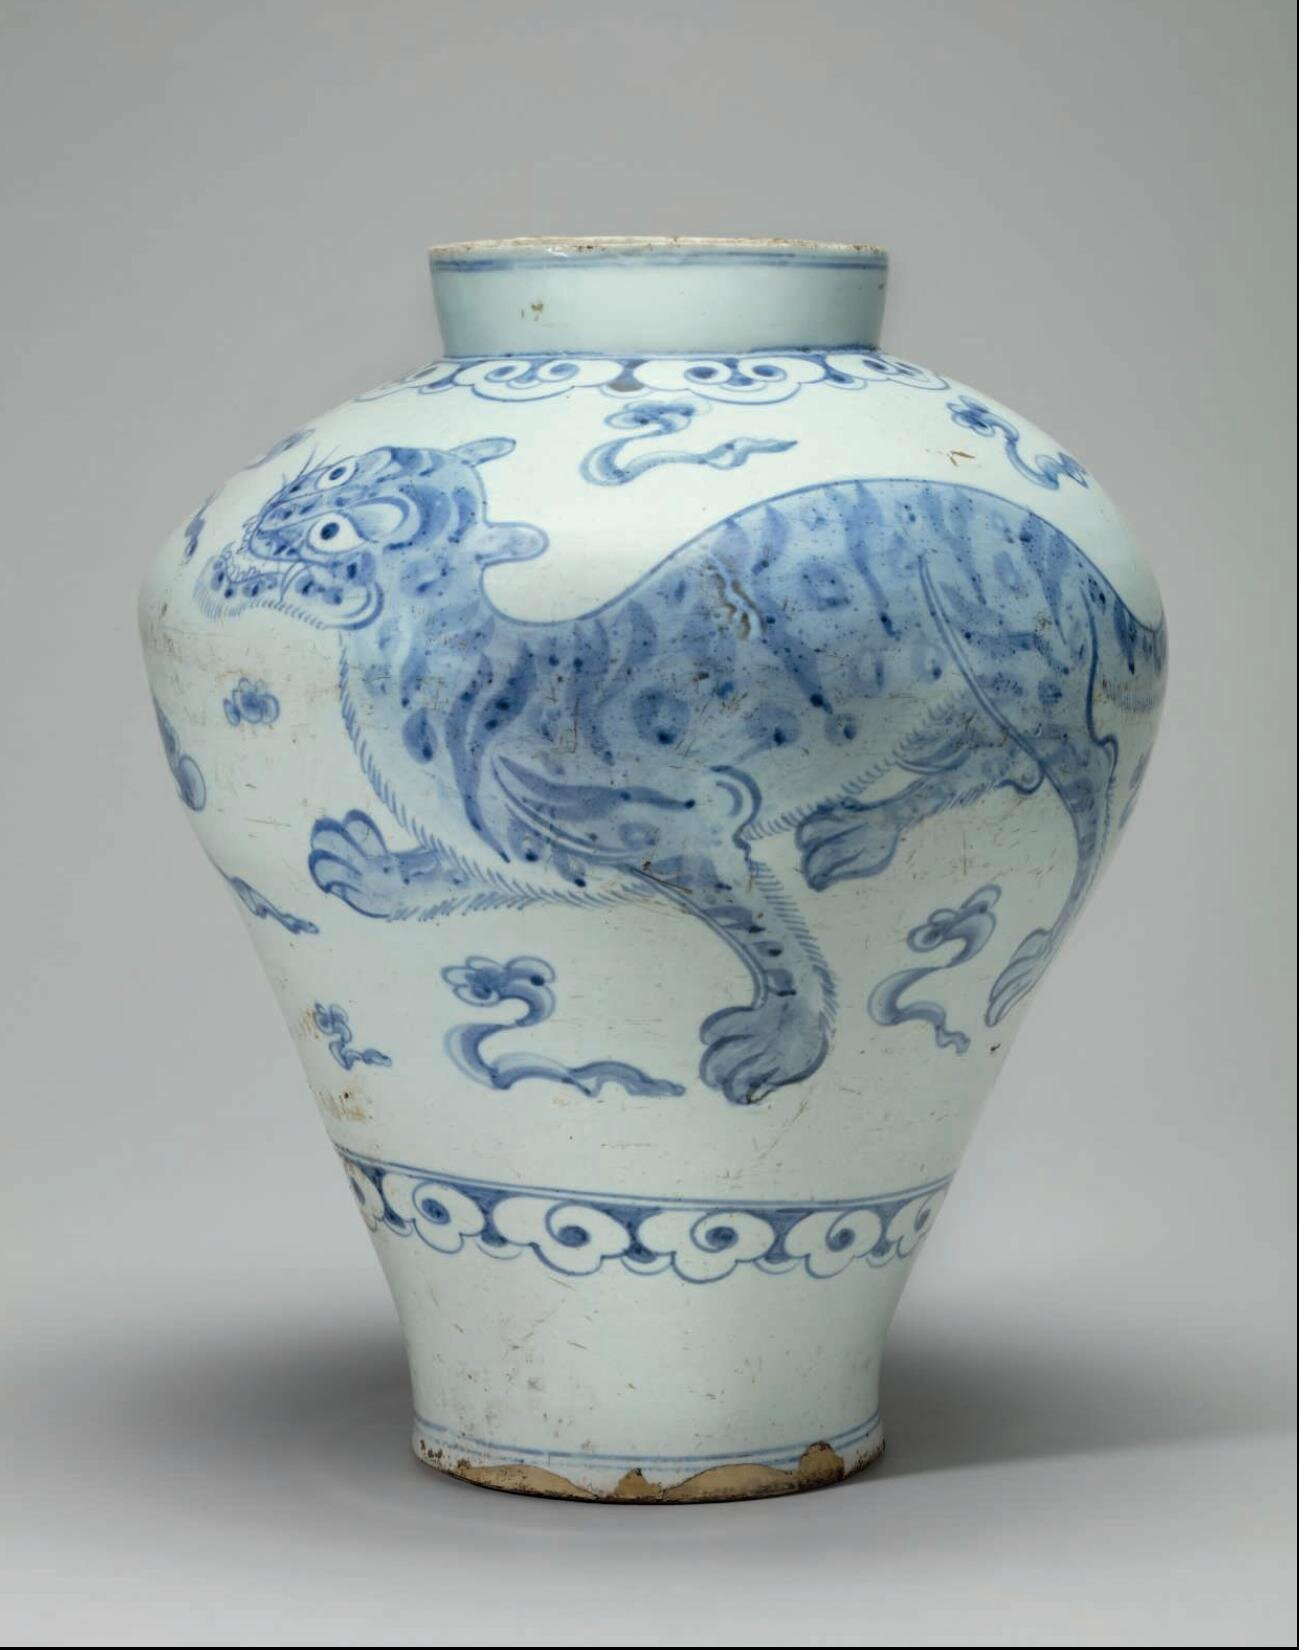 A blue and white porcelain jar with a tiger and mythical lion a blue and white porcelain jar with a tiger and mythical lion haetae joseon dynasty 19th century reviewsmspy